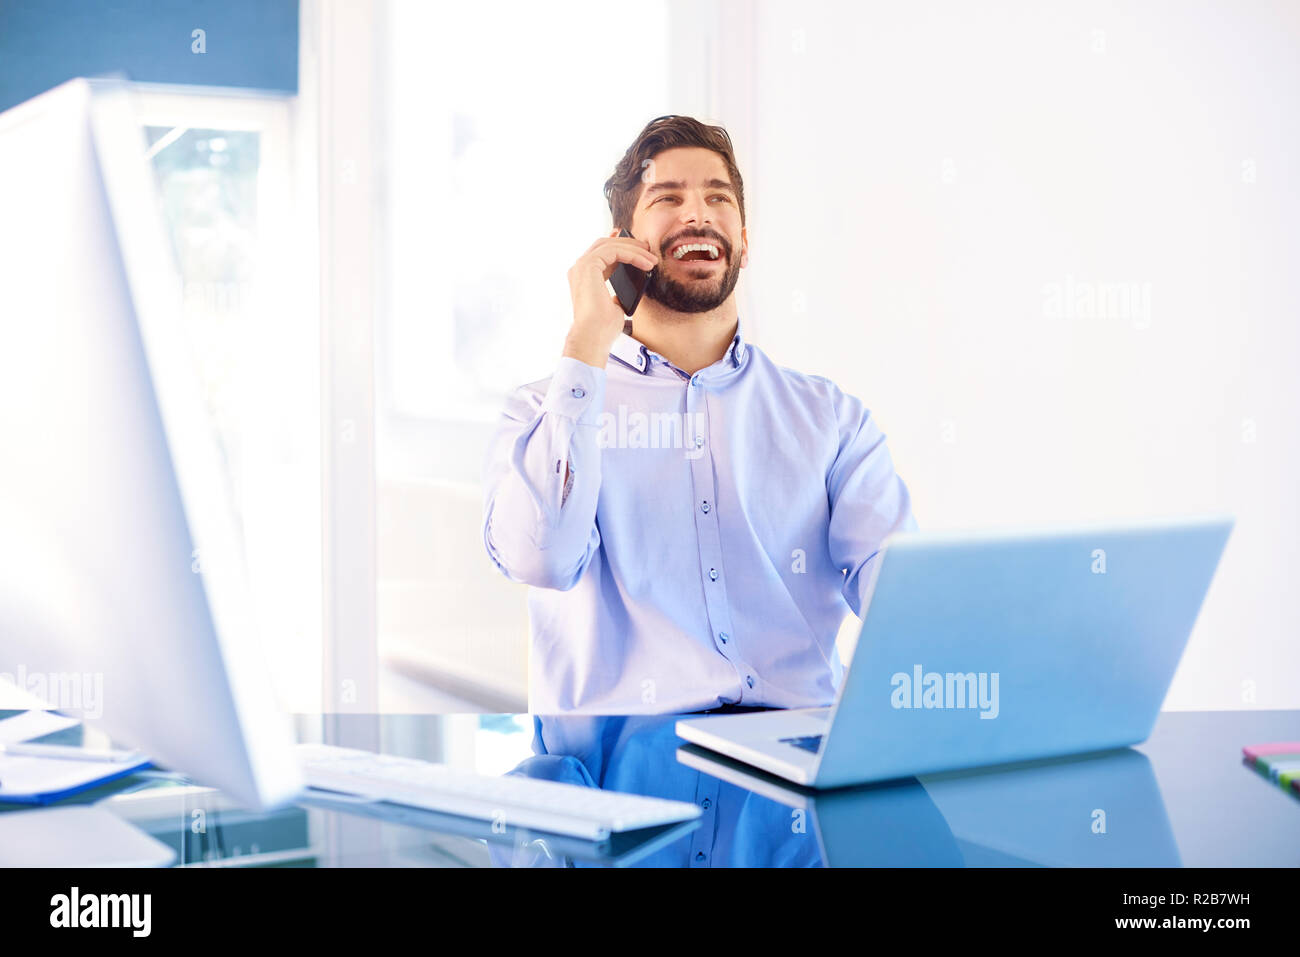 Happy Businessman Wearing Shirt While Sitting At Office Desk